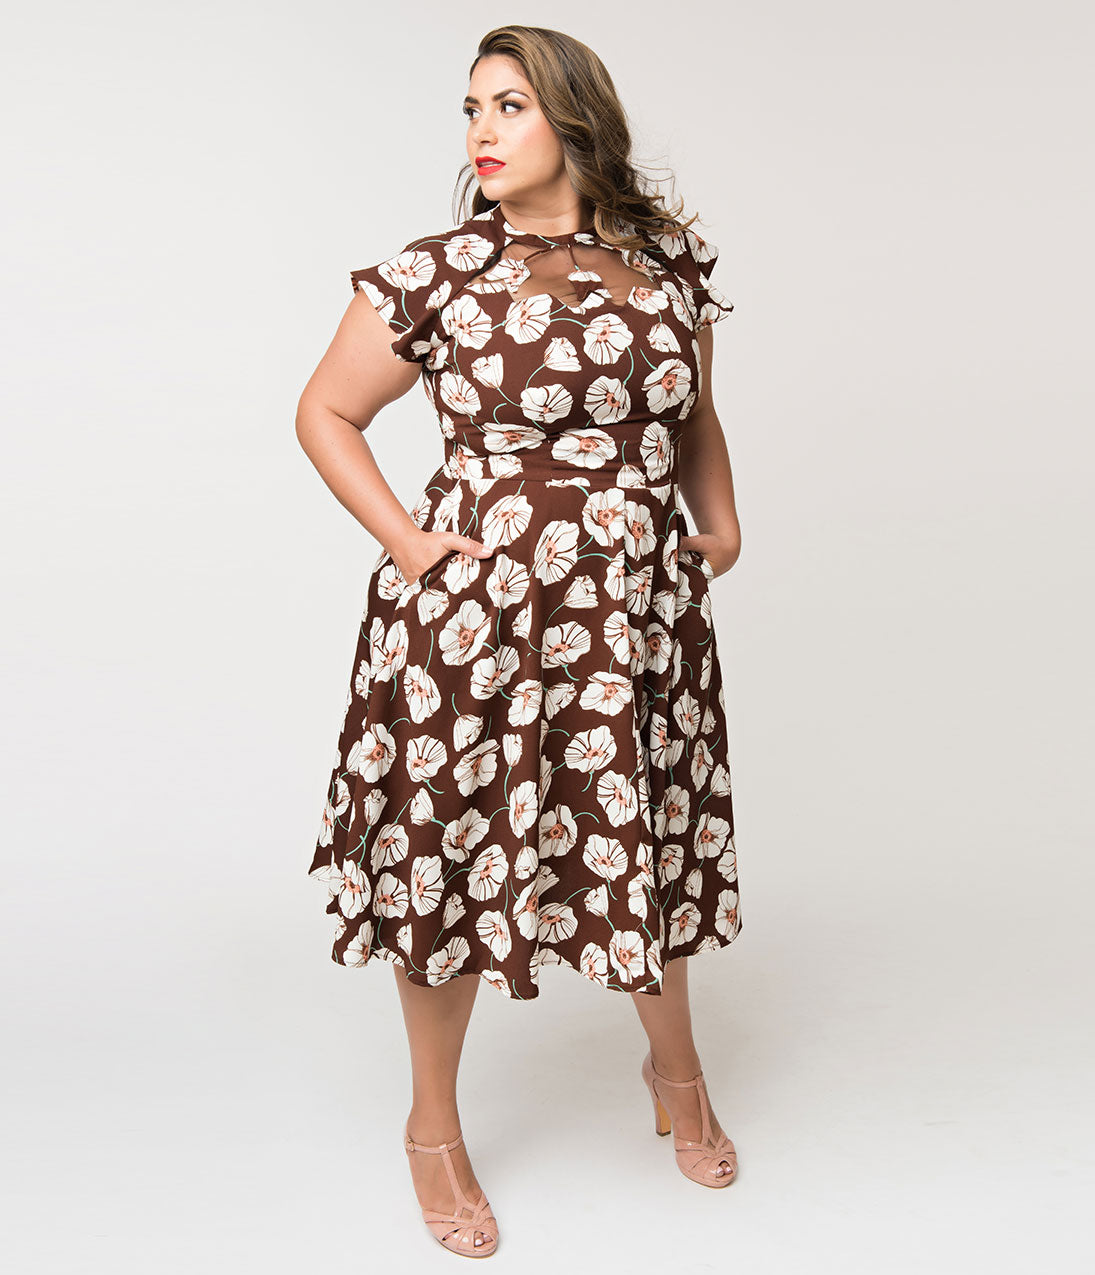 1930s Dresses | 30s Art Deco Dress Unique Vintage Plus Size 1940S Style Brown  White Tulip Print Jessie Swing Dress $88.00 AT vintagedancer.com